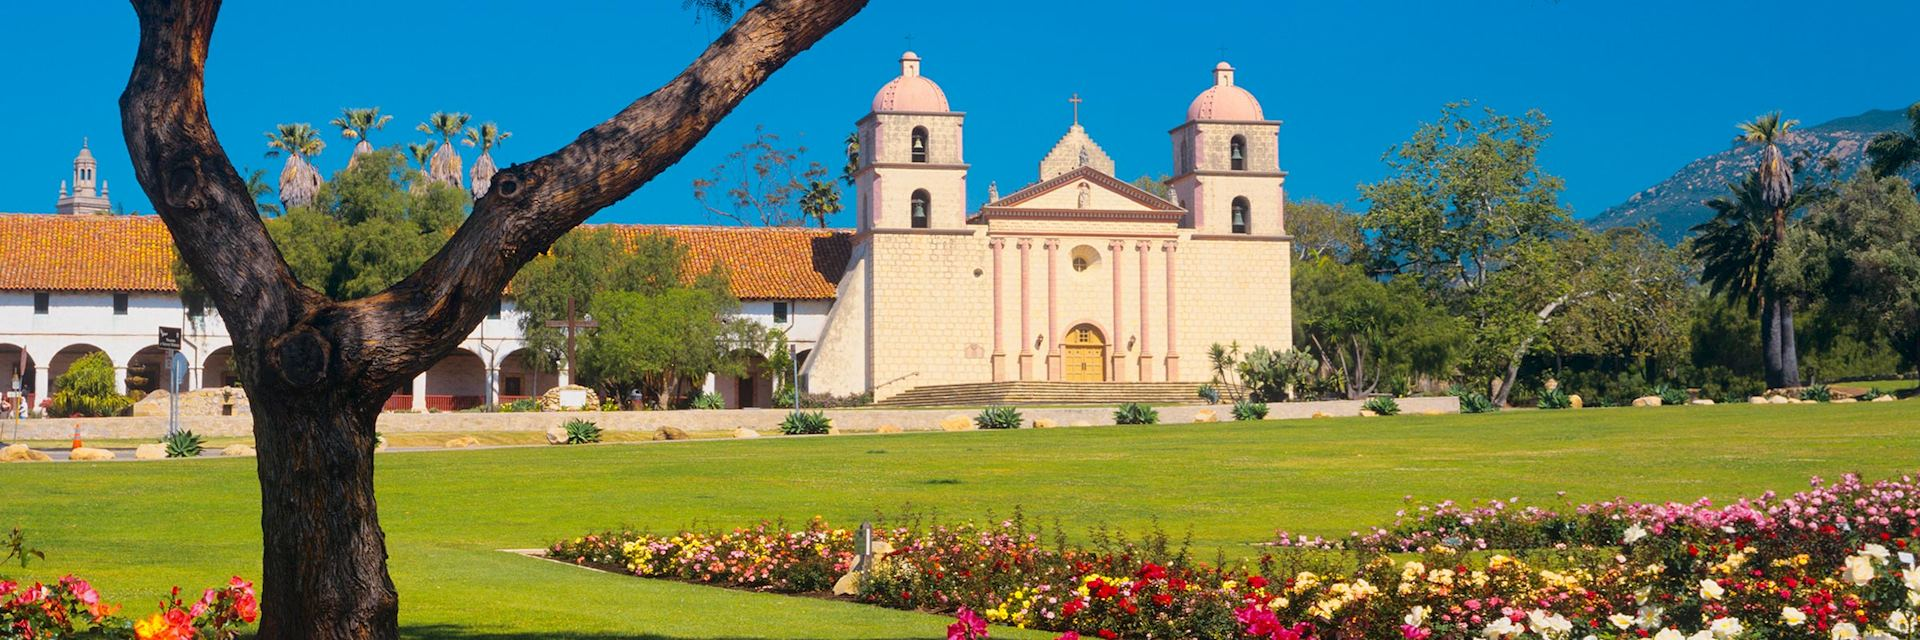 Santa Barbara Mission, California, USA